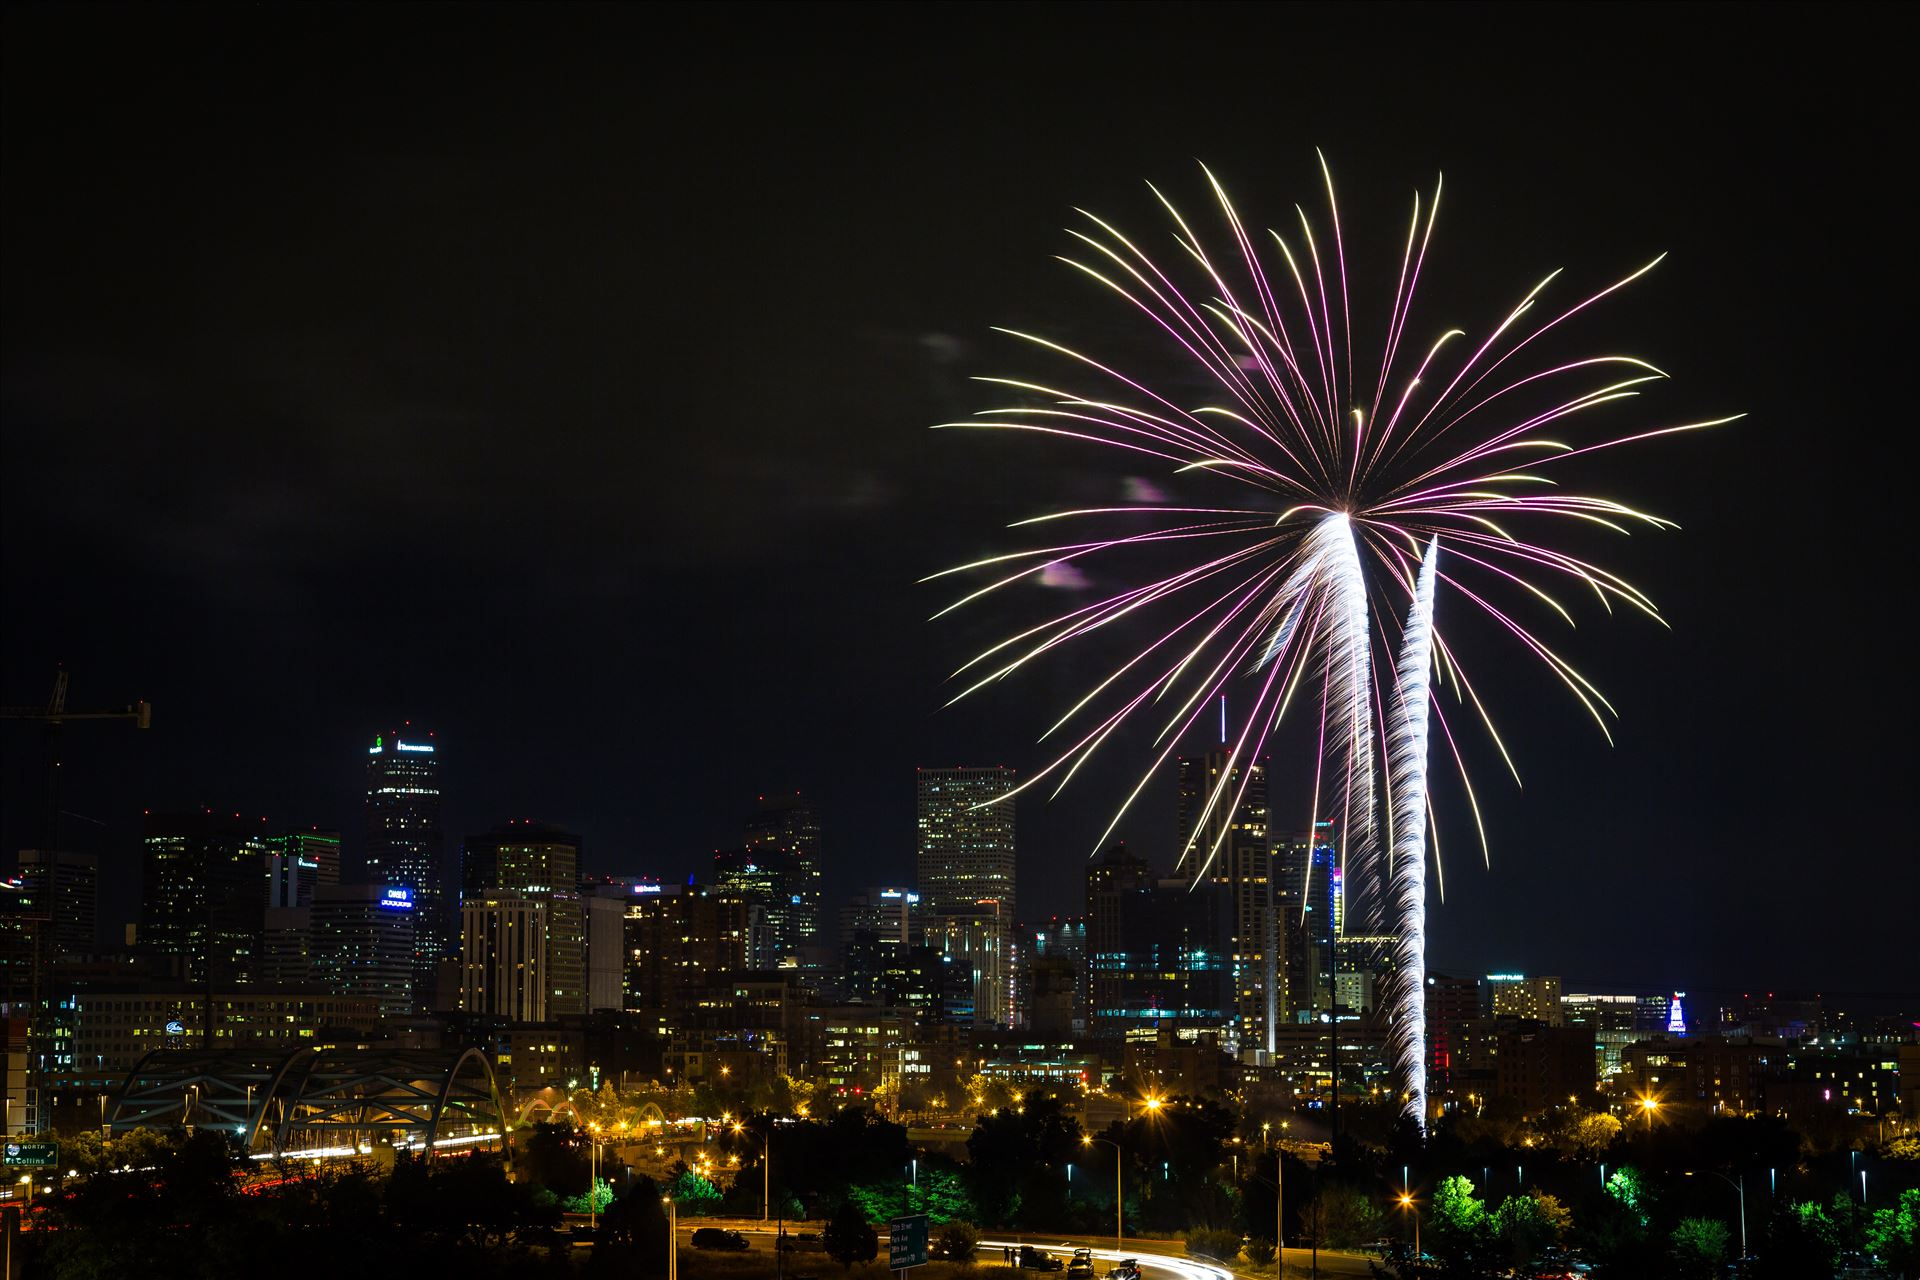 Elitch's Fireworks 2016 - 5 - Fireworks from Elitch Gardens, taken near Speer and Zuni in Denver, Colorado. by D Scott Smith